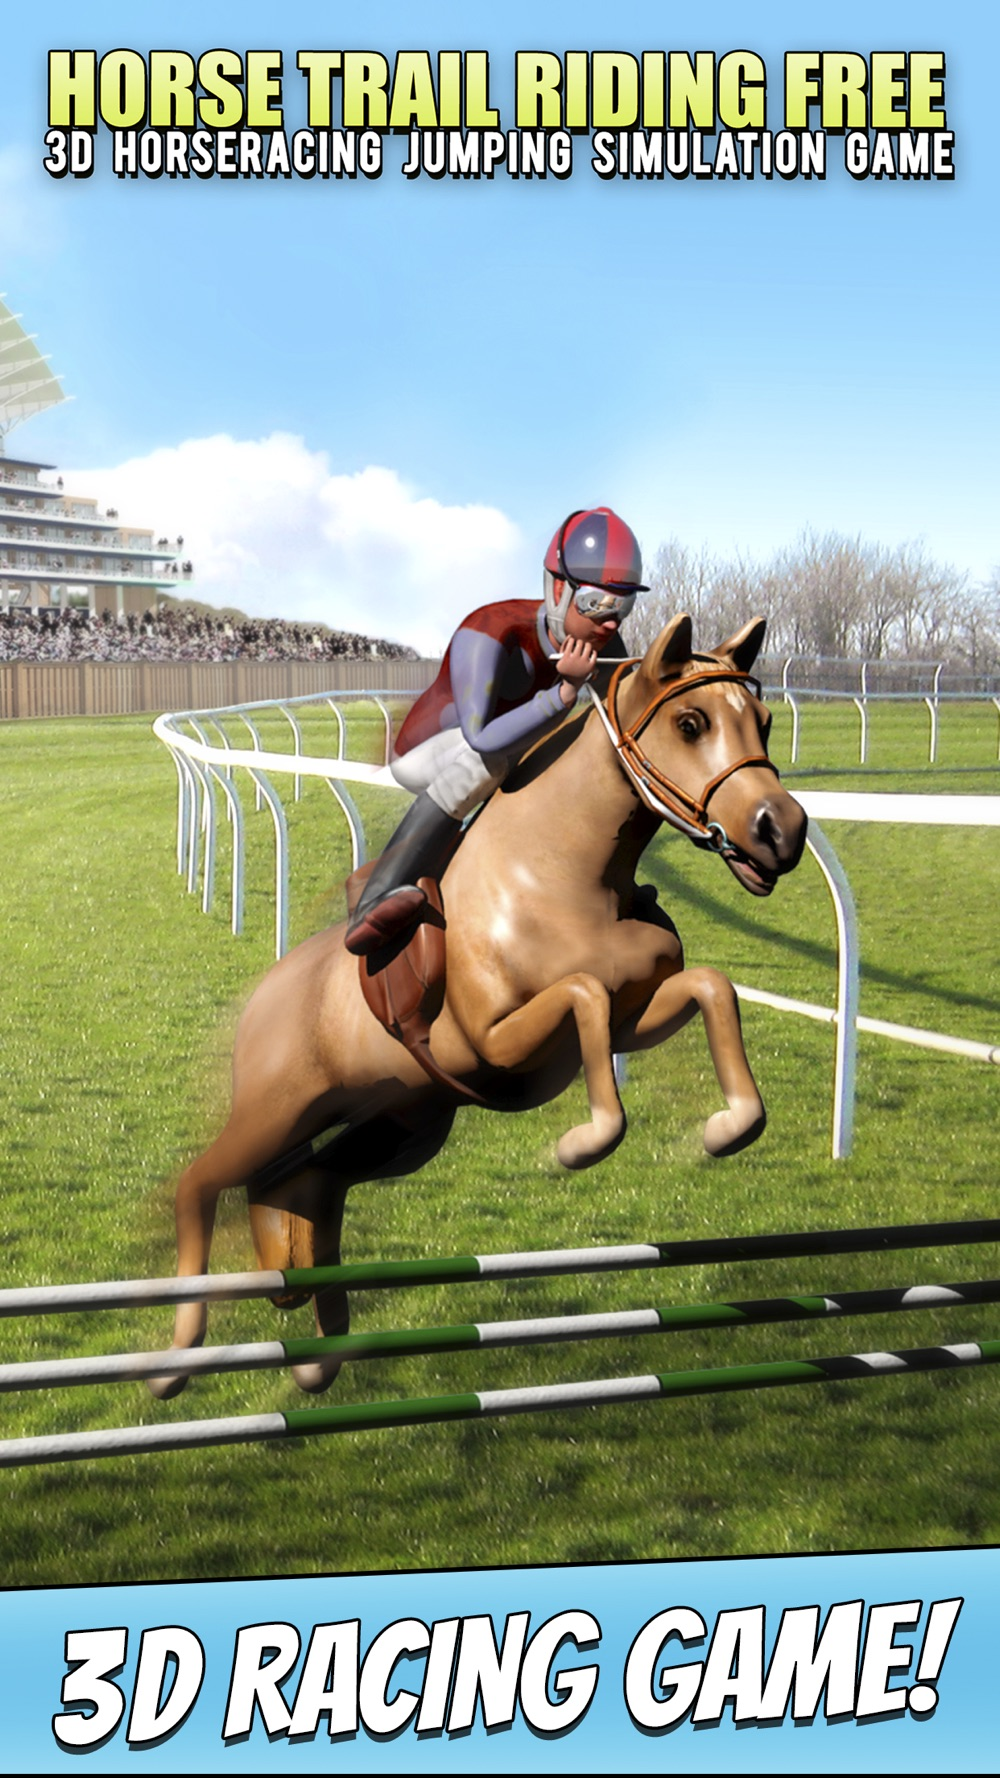 Horse Trail Riding Free – 3D Horseracing Jumping Simulation Game